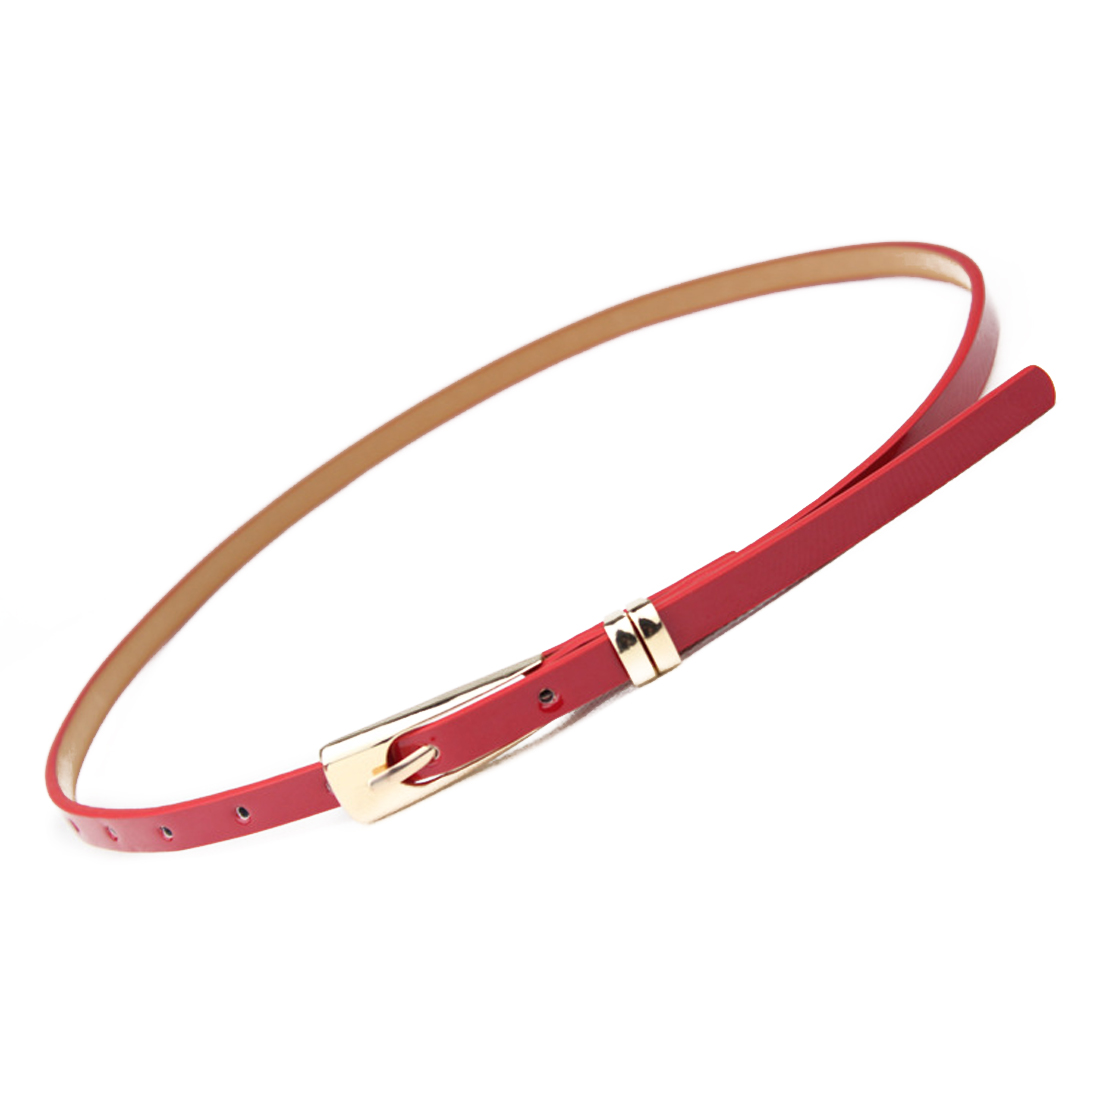 New Elegant Skinny Waist   Belt   Women   Belt   Candy Color Thin Leather Narrow Waistband Dress Accessories Decorative Beltsbelt